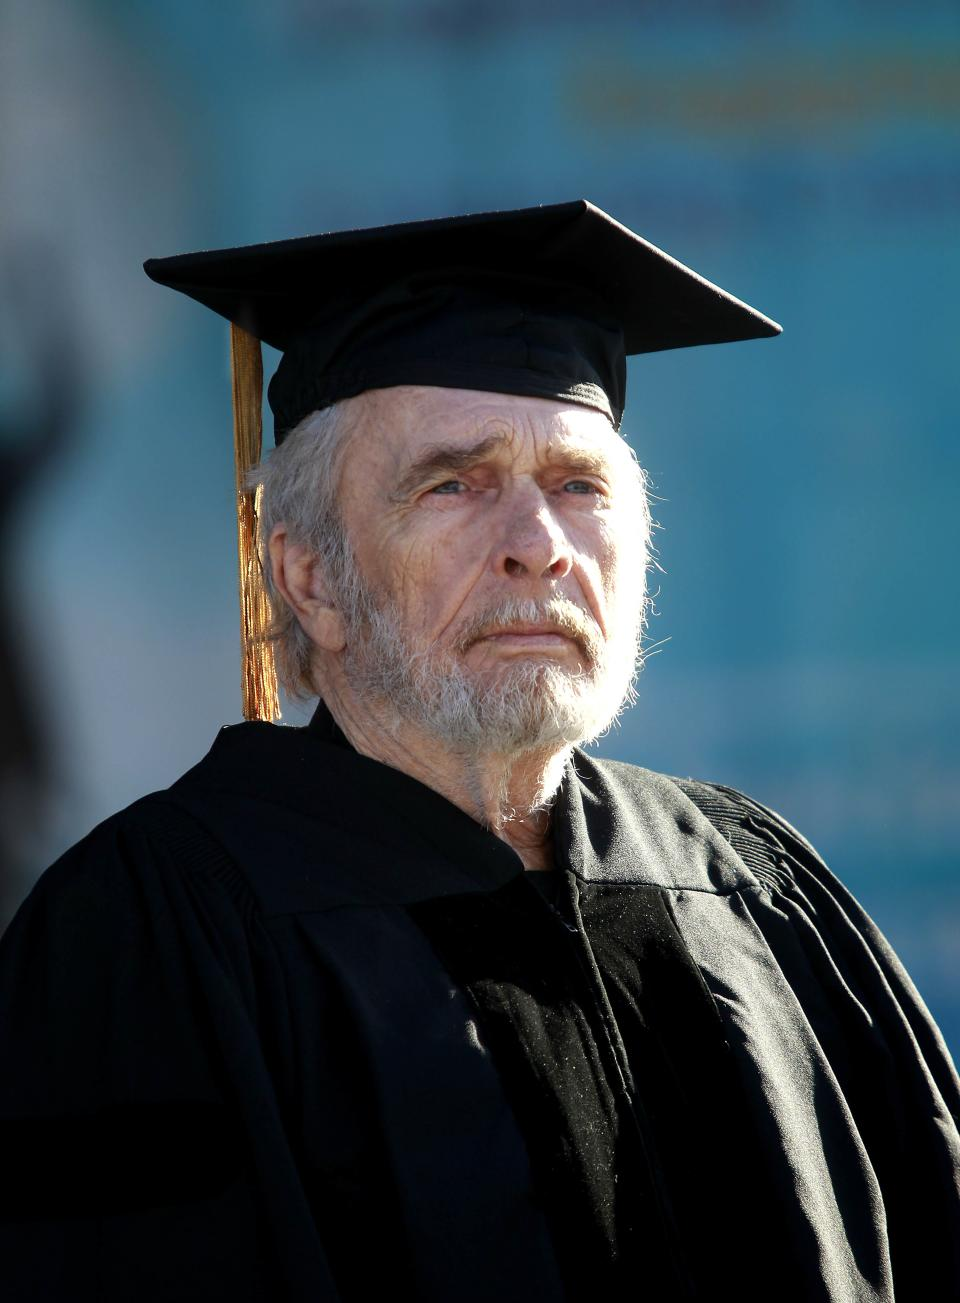 Country music legend Merle Haggard waits to receive an Honorary Doctorate at the 2013 Arts and Humanities Commencement ceremonies at California State University, Bakersfield on Friday June 14, 2013. (AP photo/The Bakersfield Californian, Felix Adamo)